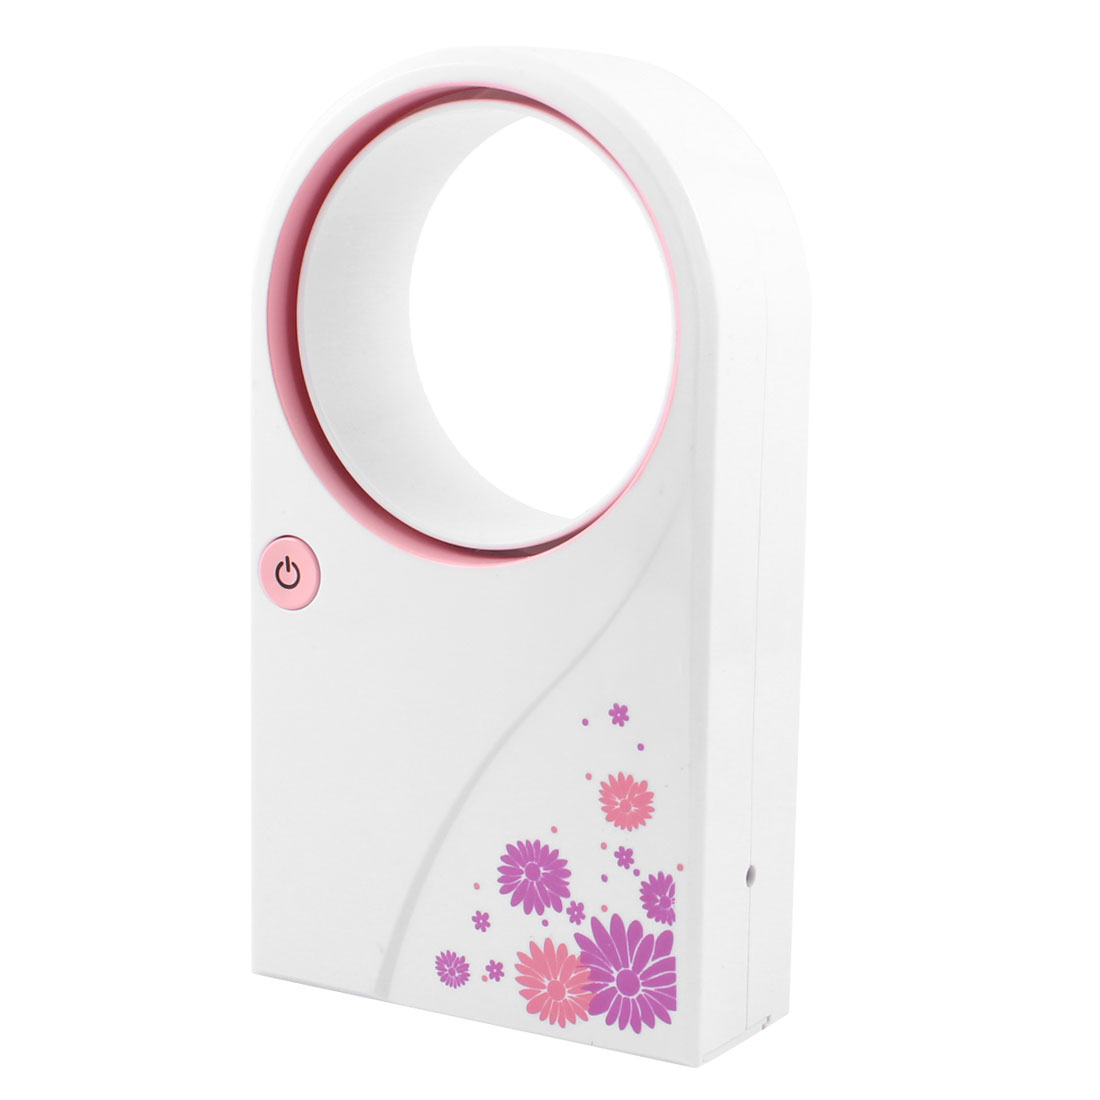 USB Battery Power Hand Held Air Condition No Leaf Fan White Pink